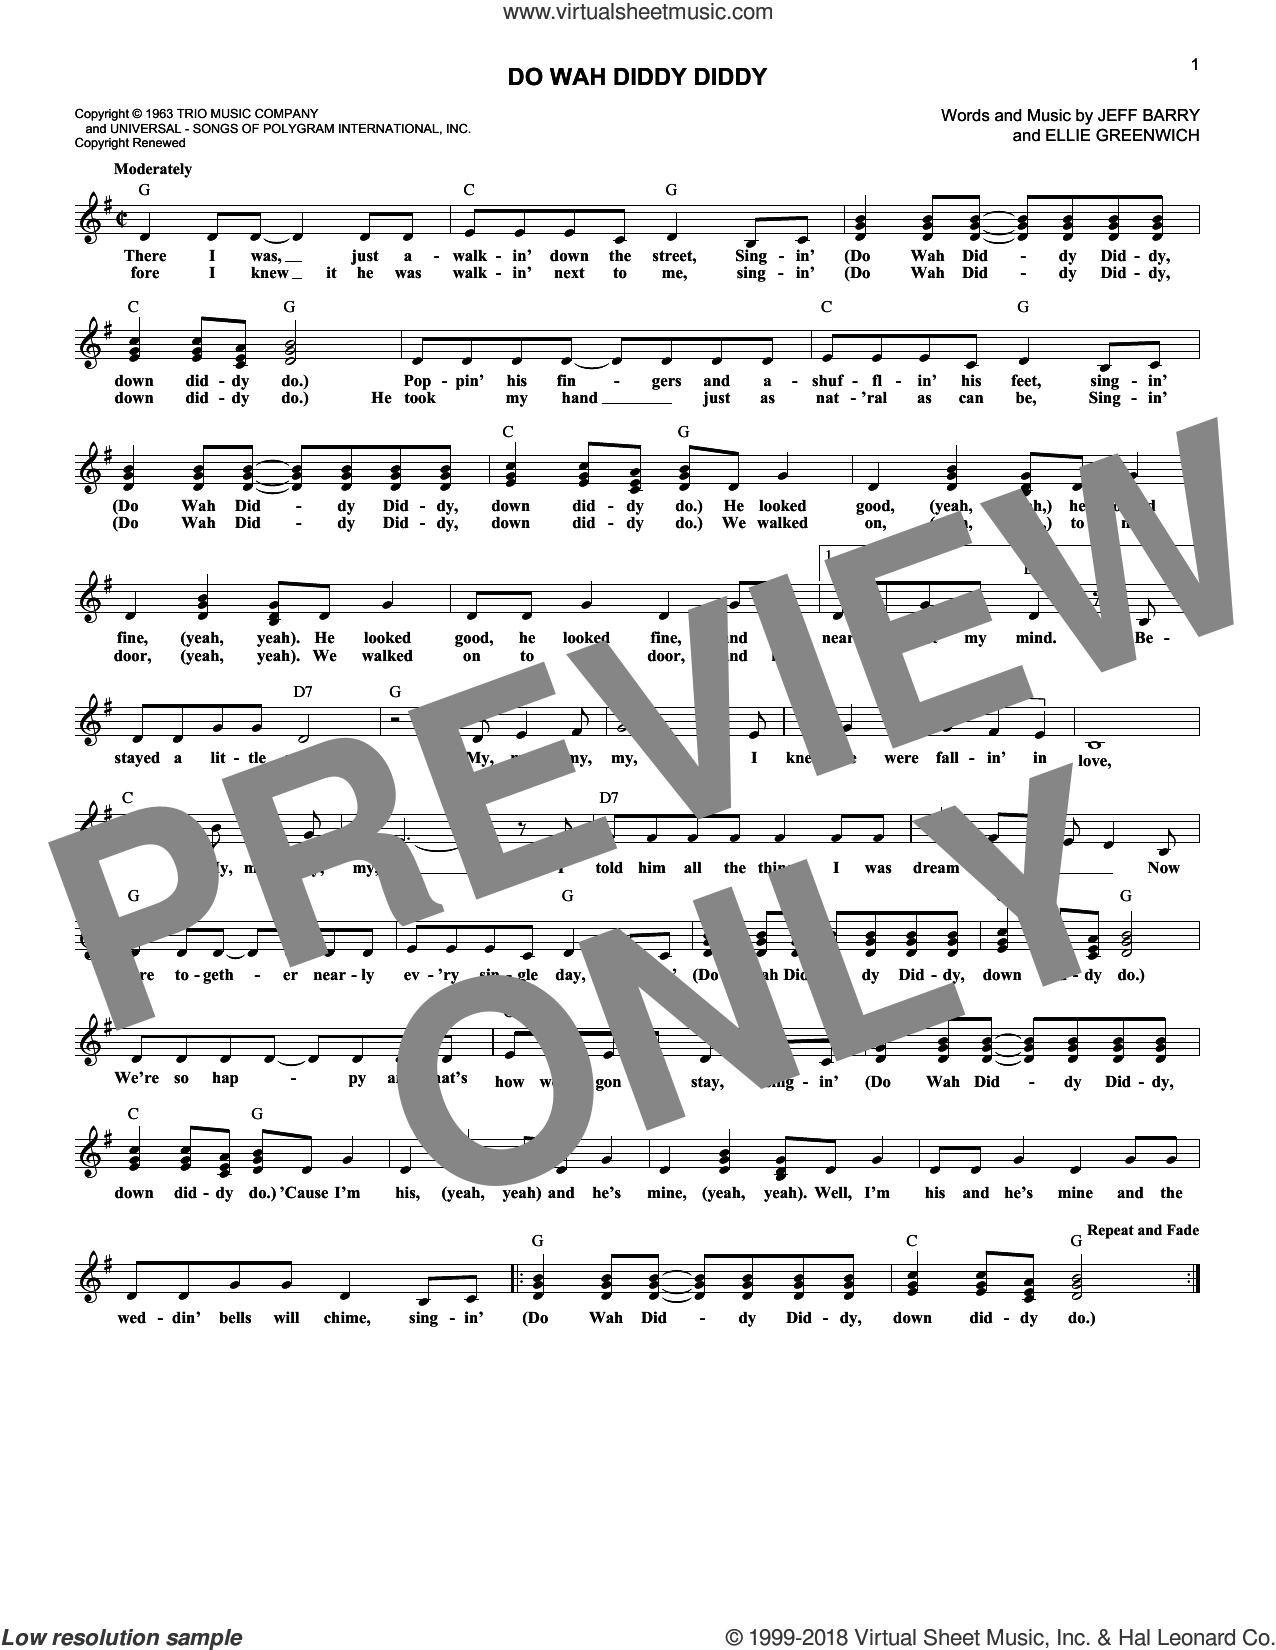 Do Wah Diddy Diddy sheet music for voice and other instruments (fake book) by Jeff Barry, Manfred Mann and Ellie Greenwich. Score Image Preview.